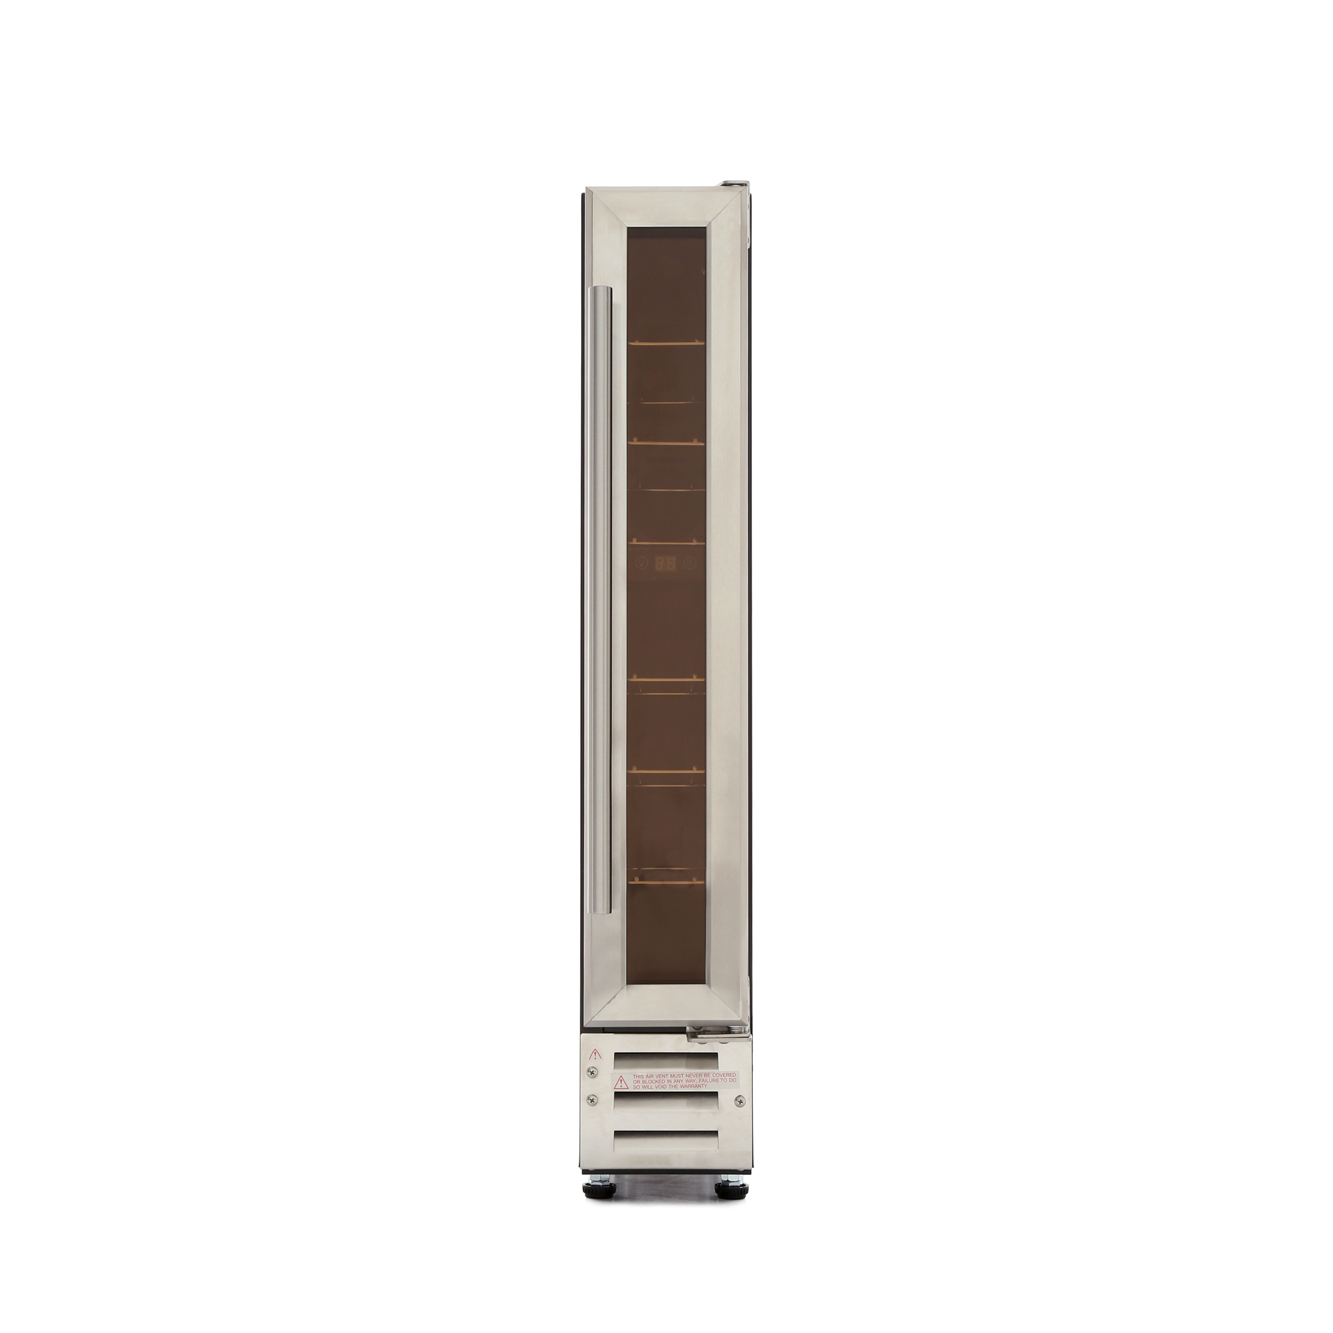 Lec 150WC Mk2 Stainless Steel Integrated Wine Cooler